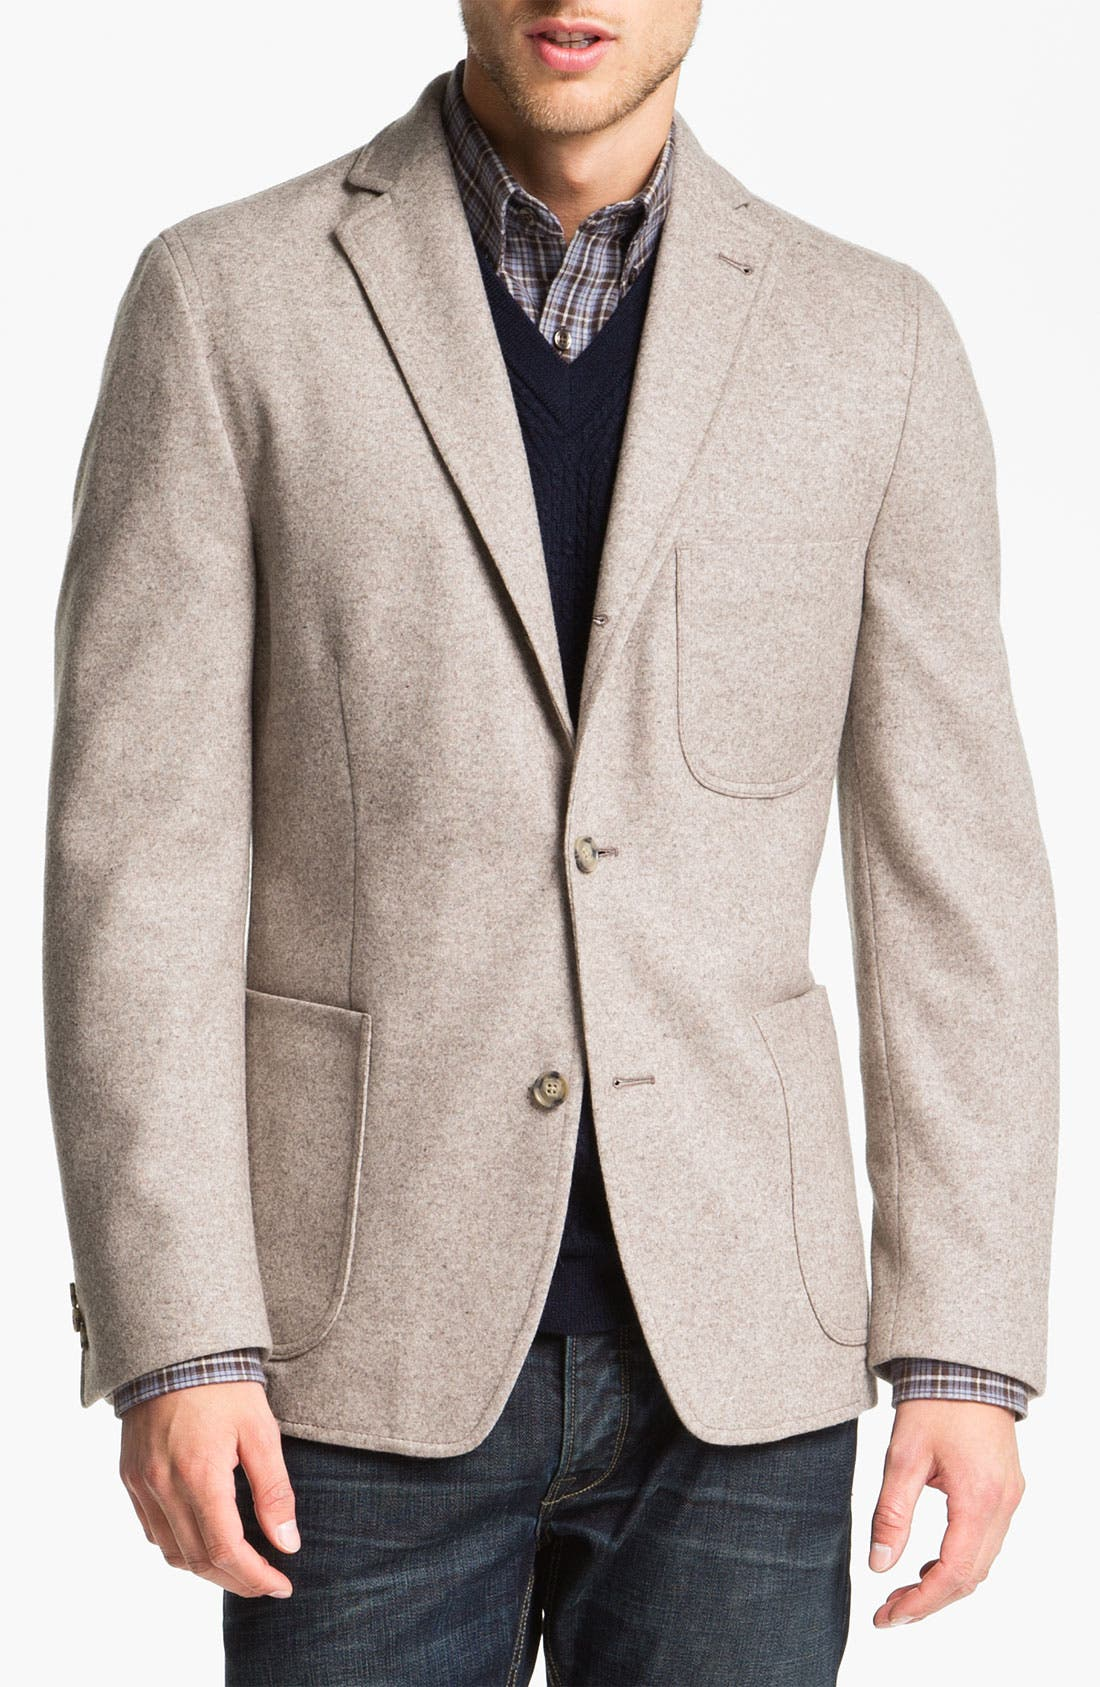 Main Image - Kroon 'Mayer' Wool & Cashmere Blend Knit Sportcoat